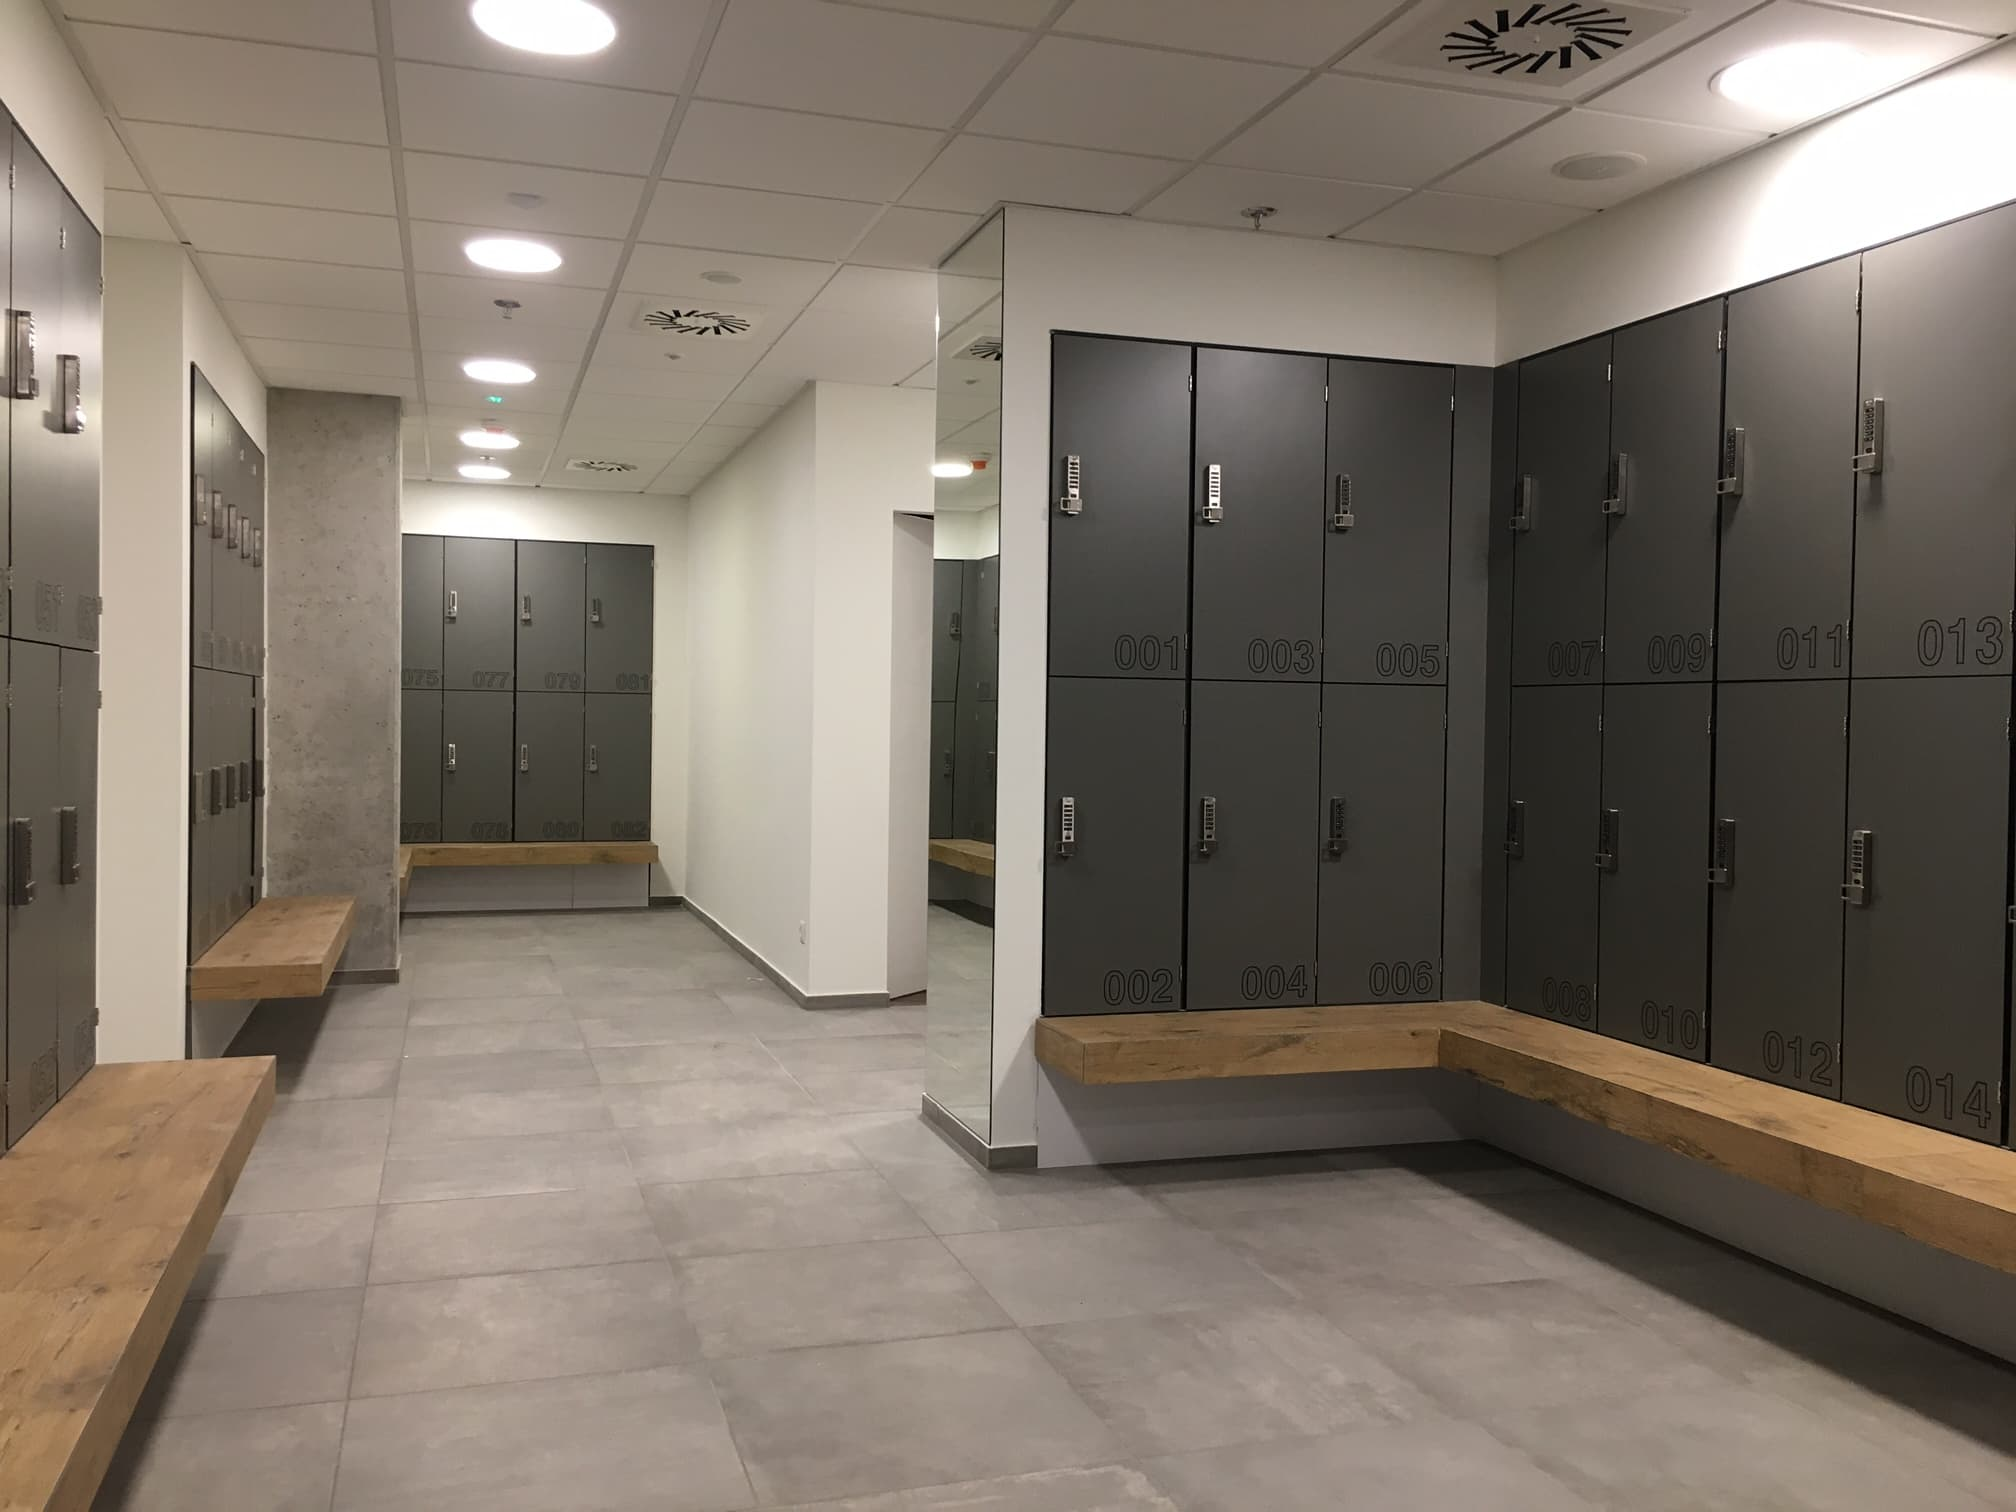 Phenolic lockers hpl for wet area — atepaa